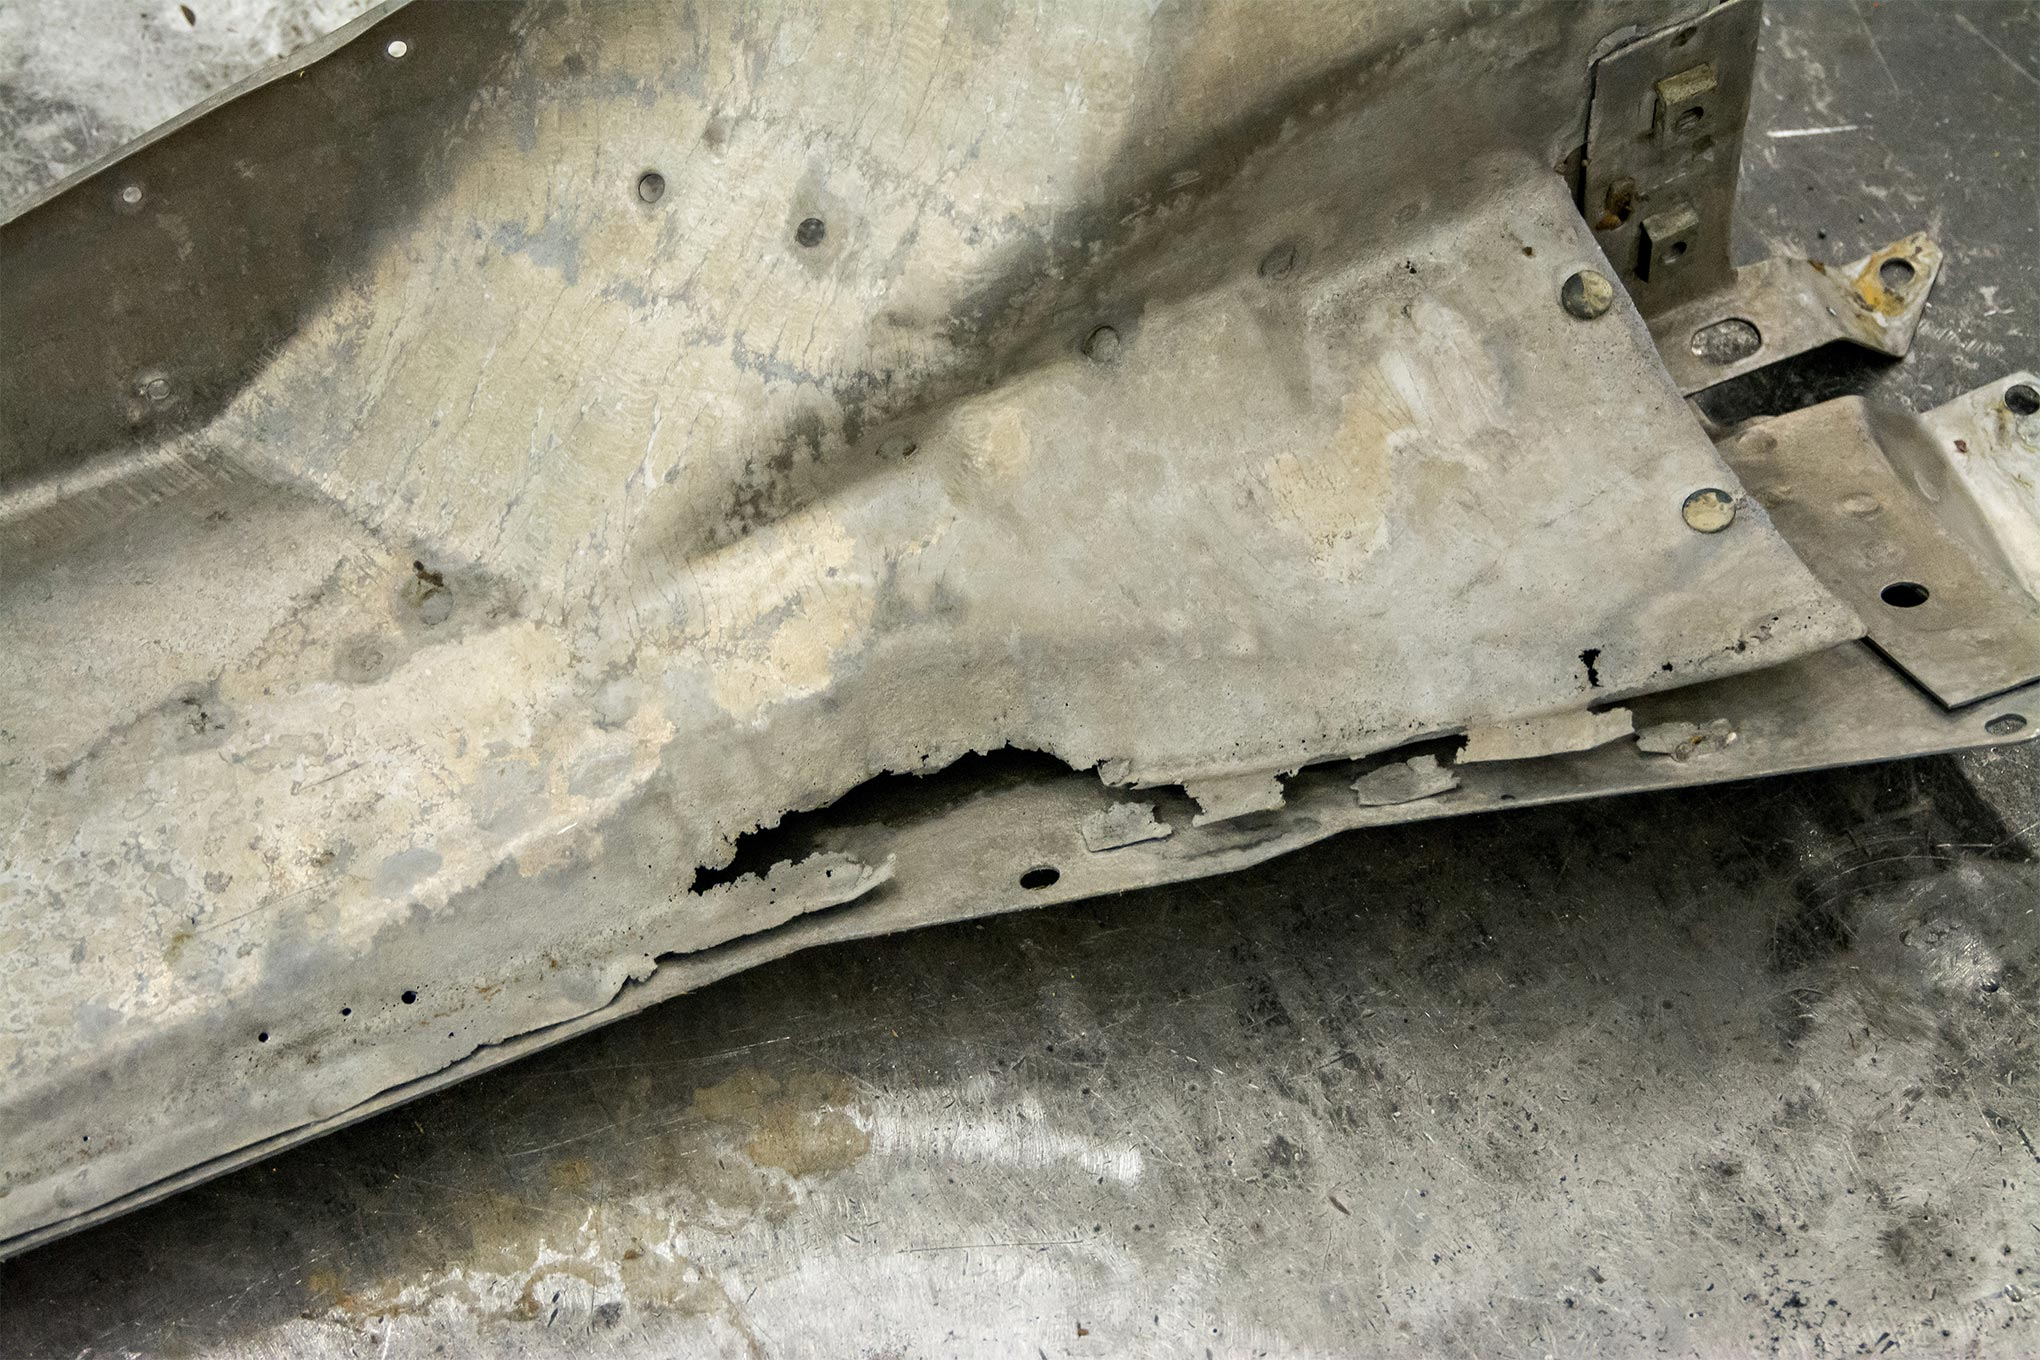 The laws of chemistry stop for no man. If water can collect somewhere, it will eventually lead to rust damage. The metal is perforated along the entire seam.